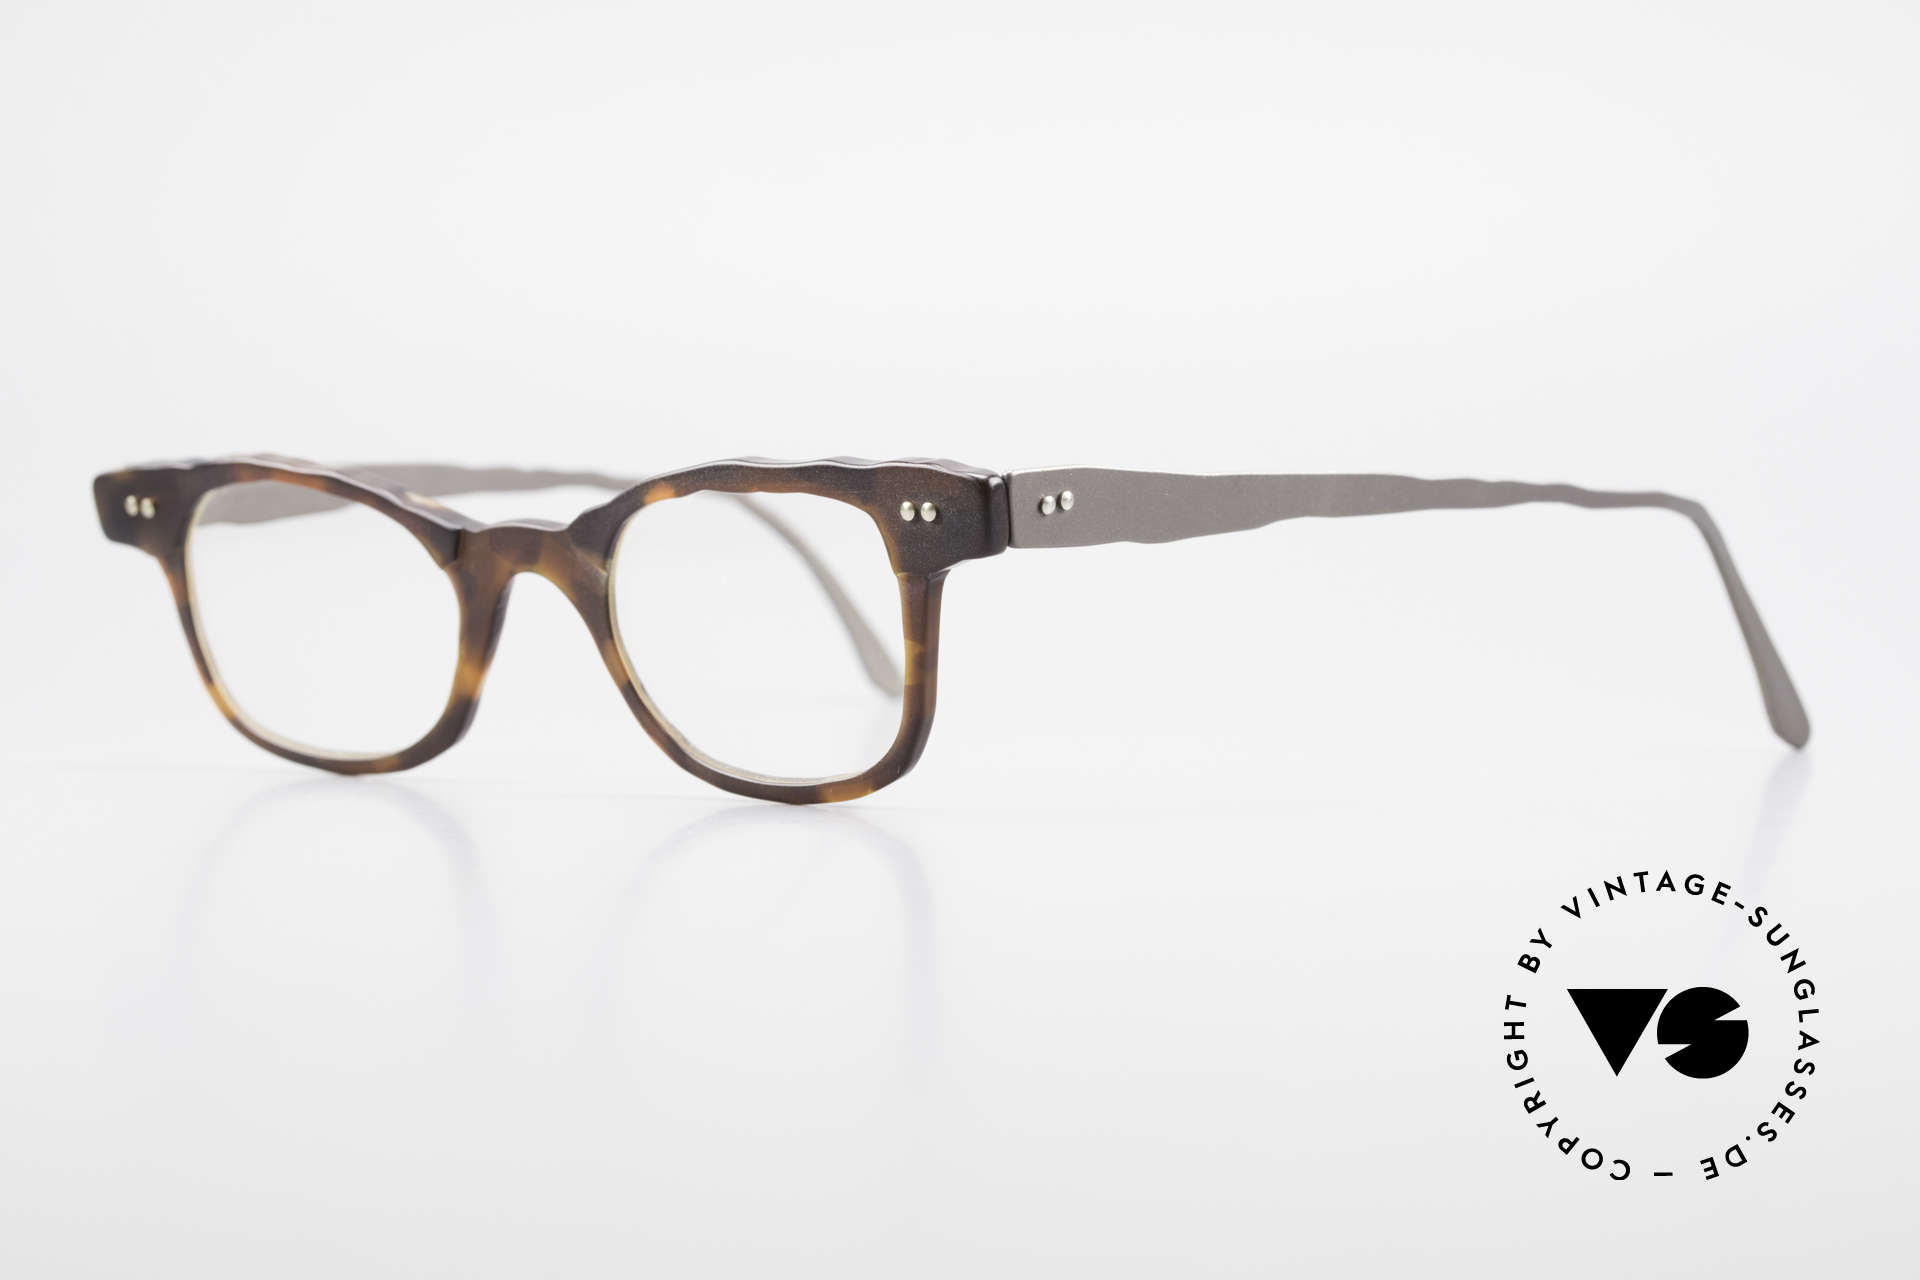 Theo Belgium Eye-Witness Avant-Garde Titanium Glasses, made for the avant-garde, individualists; trend-setters, Made for Men and Women